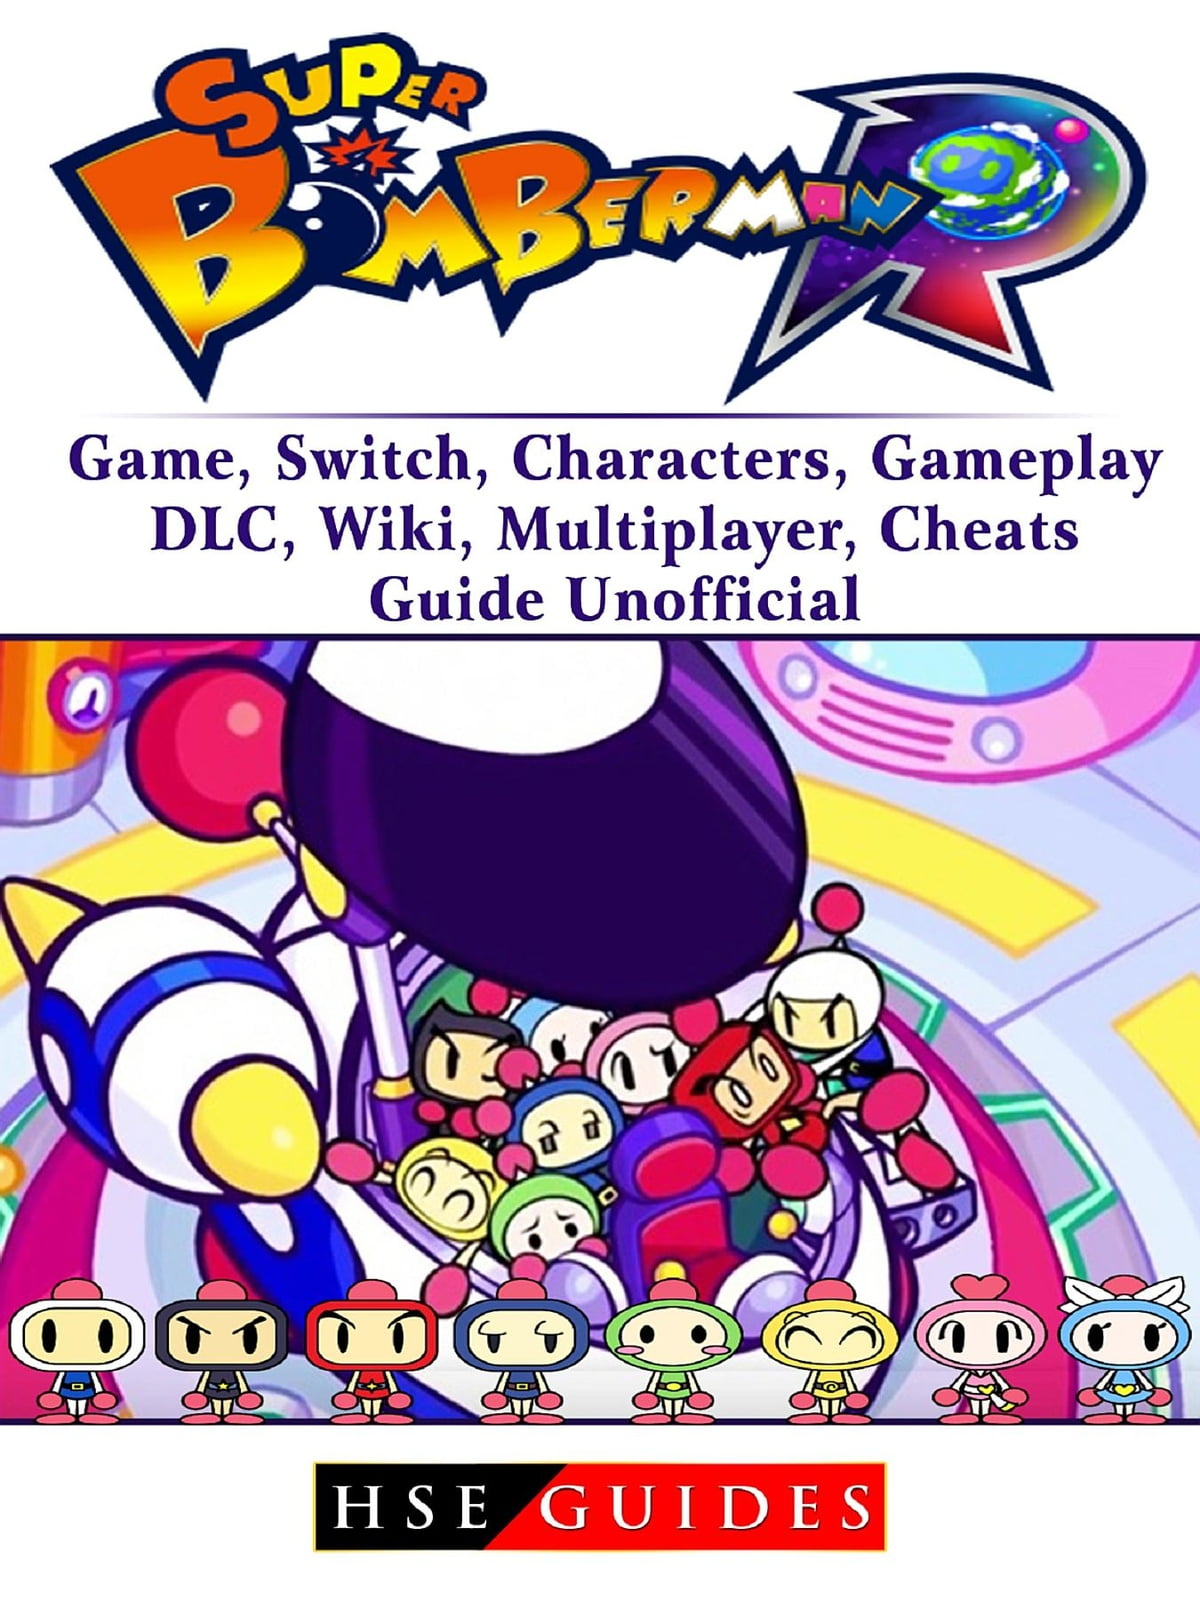 Super Bomberman R Game Switch Characters Gameplay Dlc Wiki Nintendo Us Multiplayer Cheats Guide Unofficial Ebook By Hse Guides 9781387707850 Rakuten Kobo